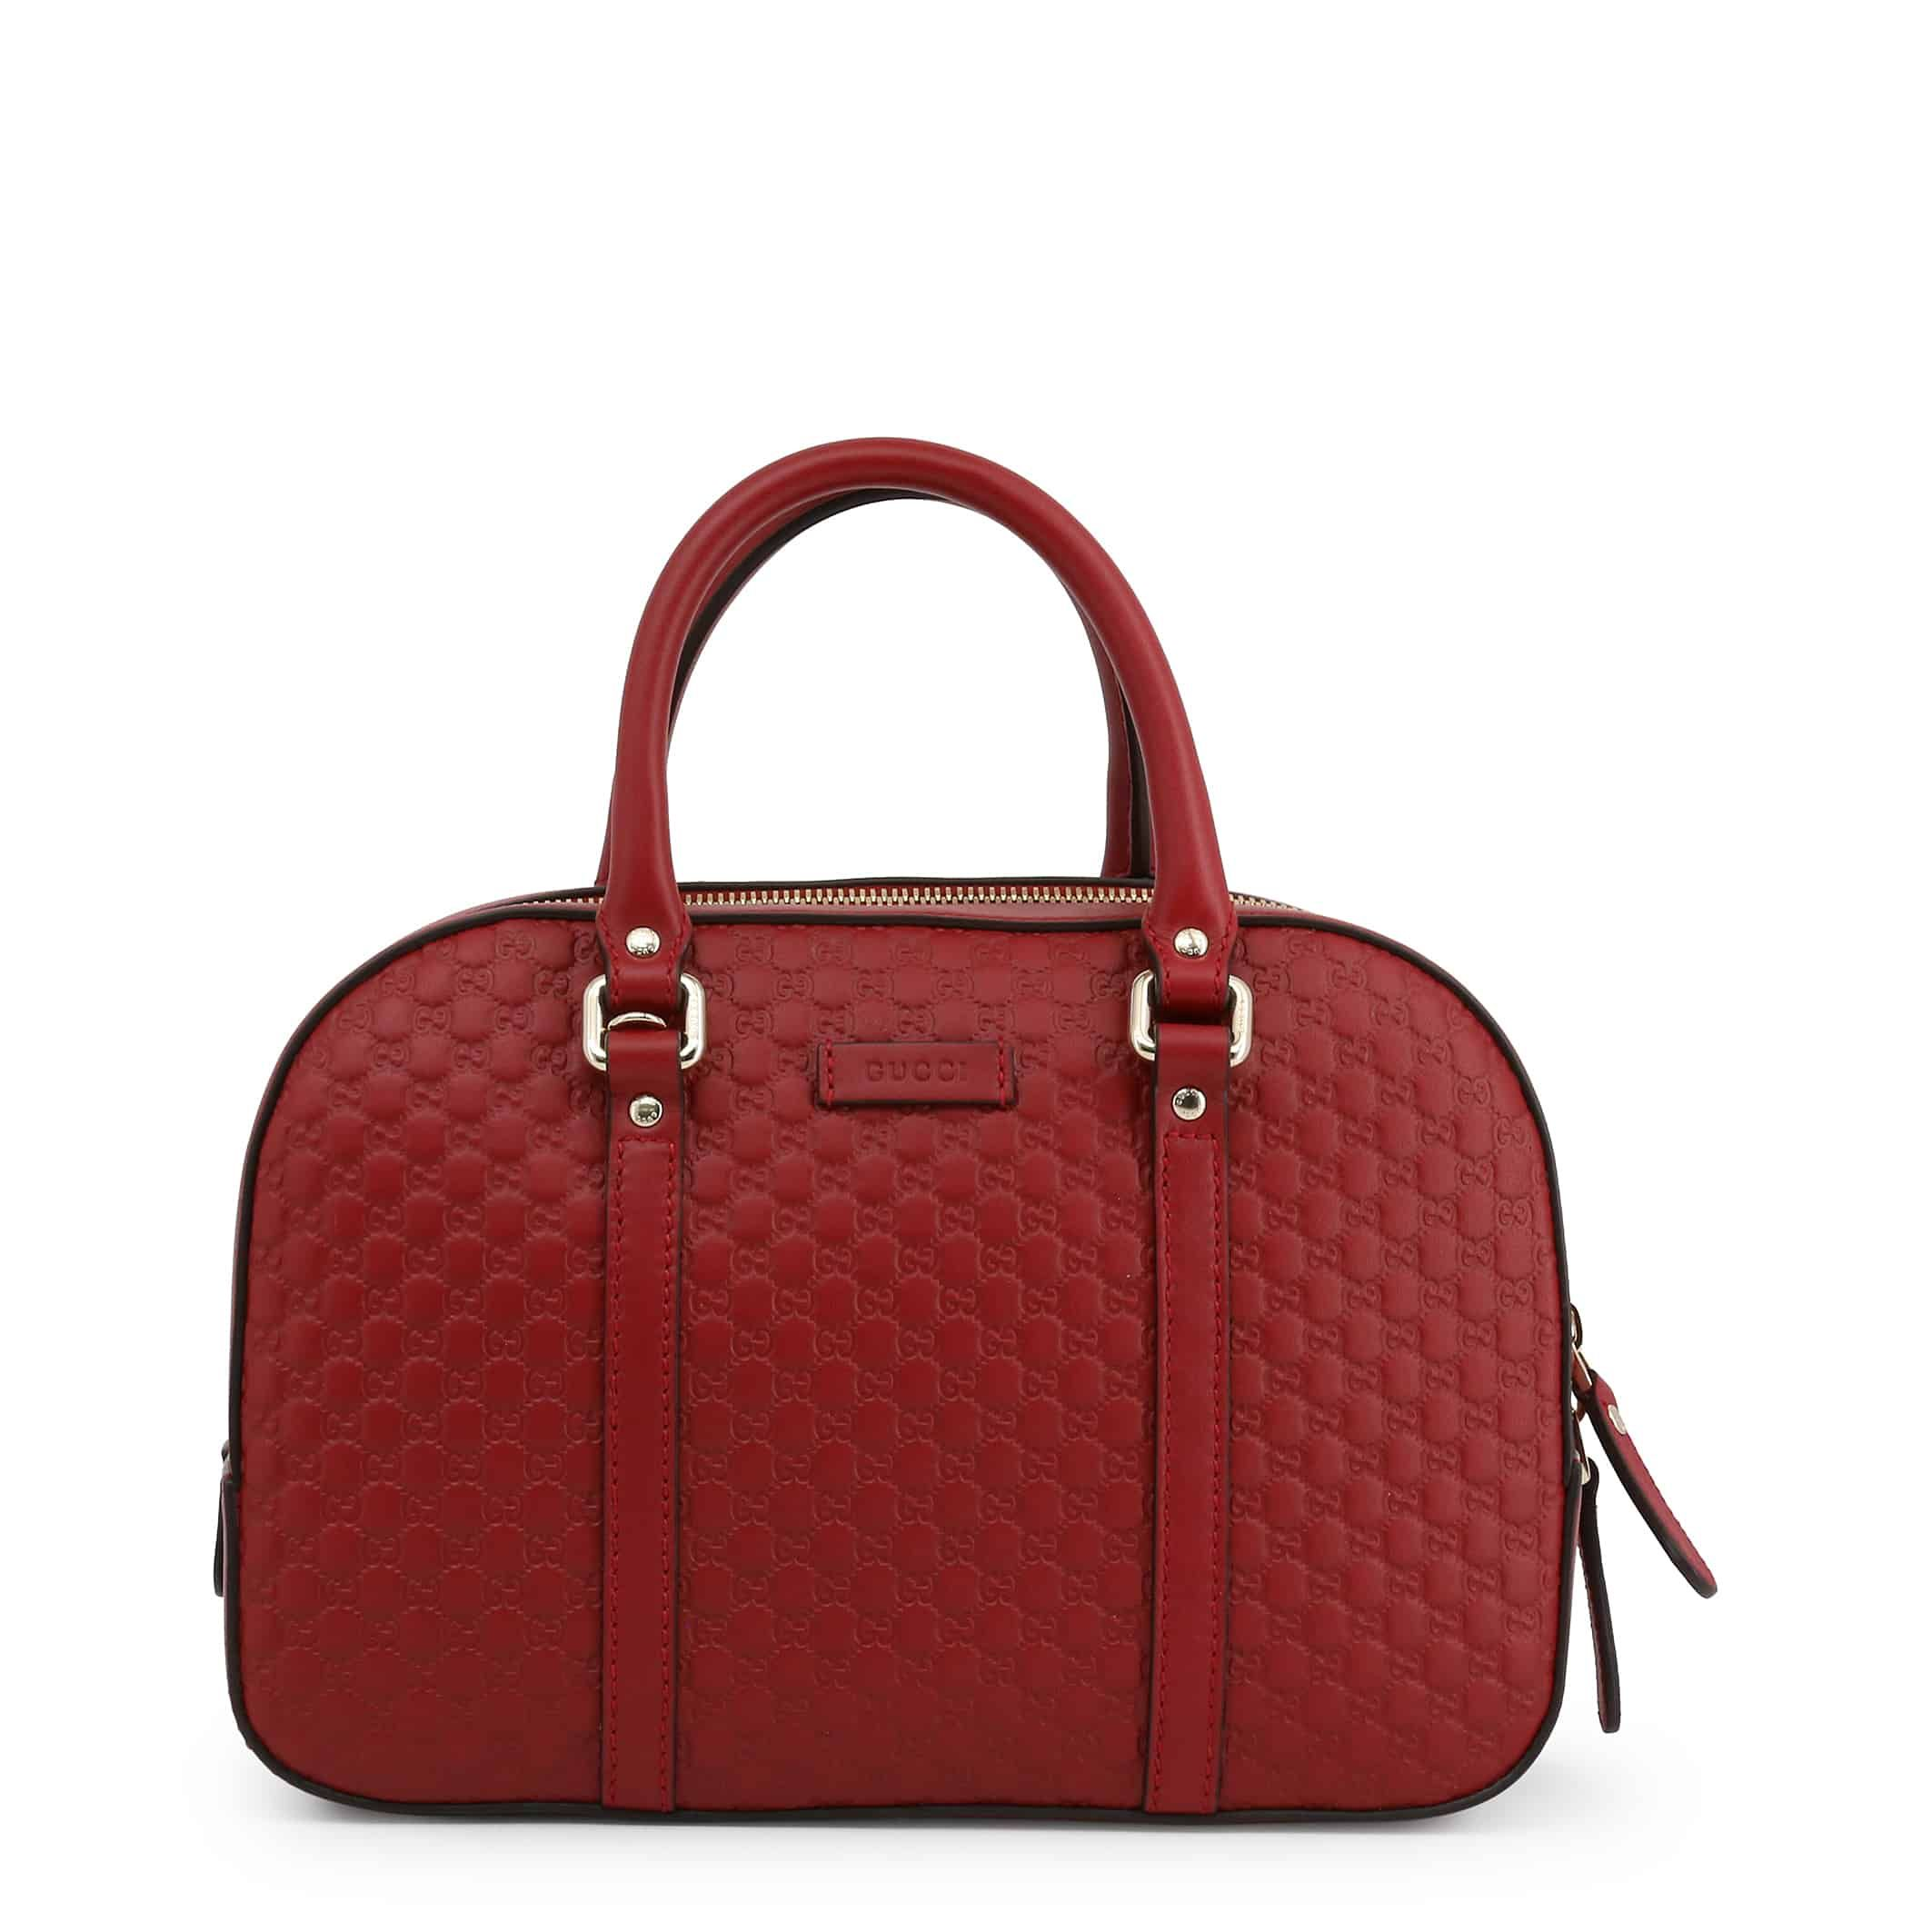 Bags Gucci – 510286_BMJ1G